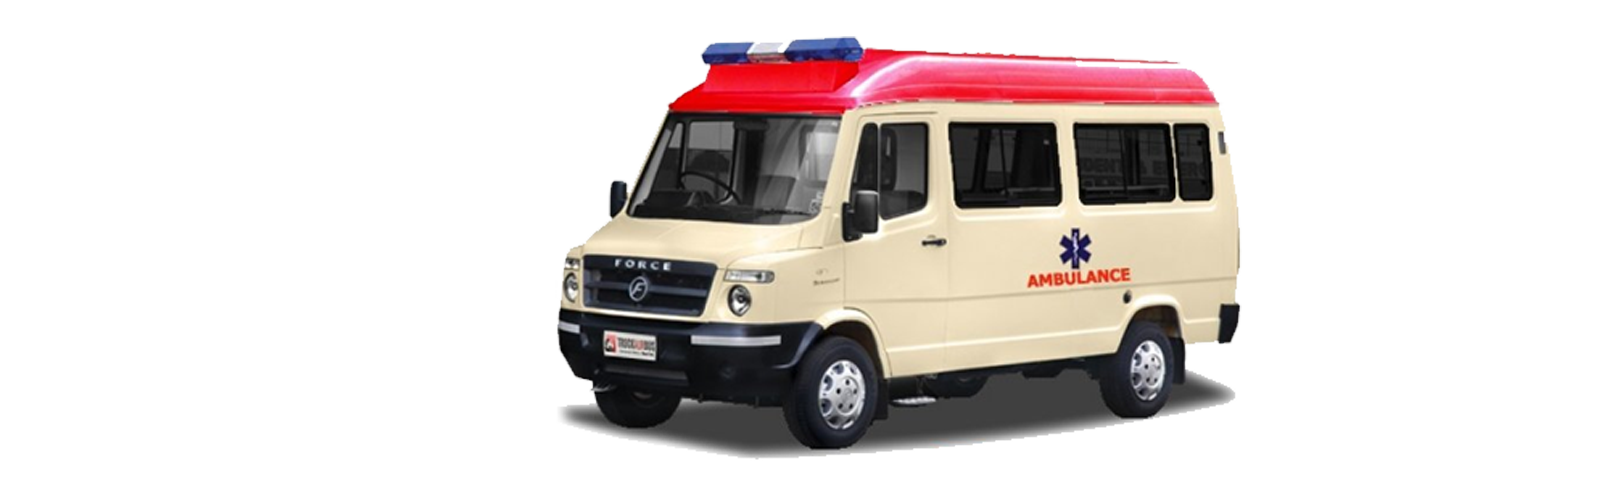 Ambulance Service in Kharar